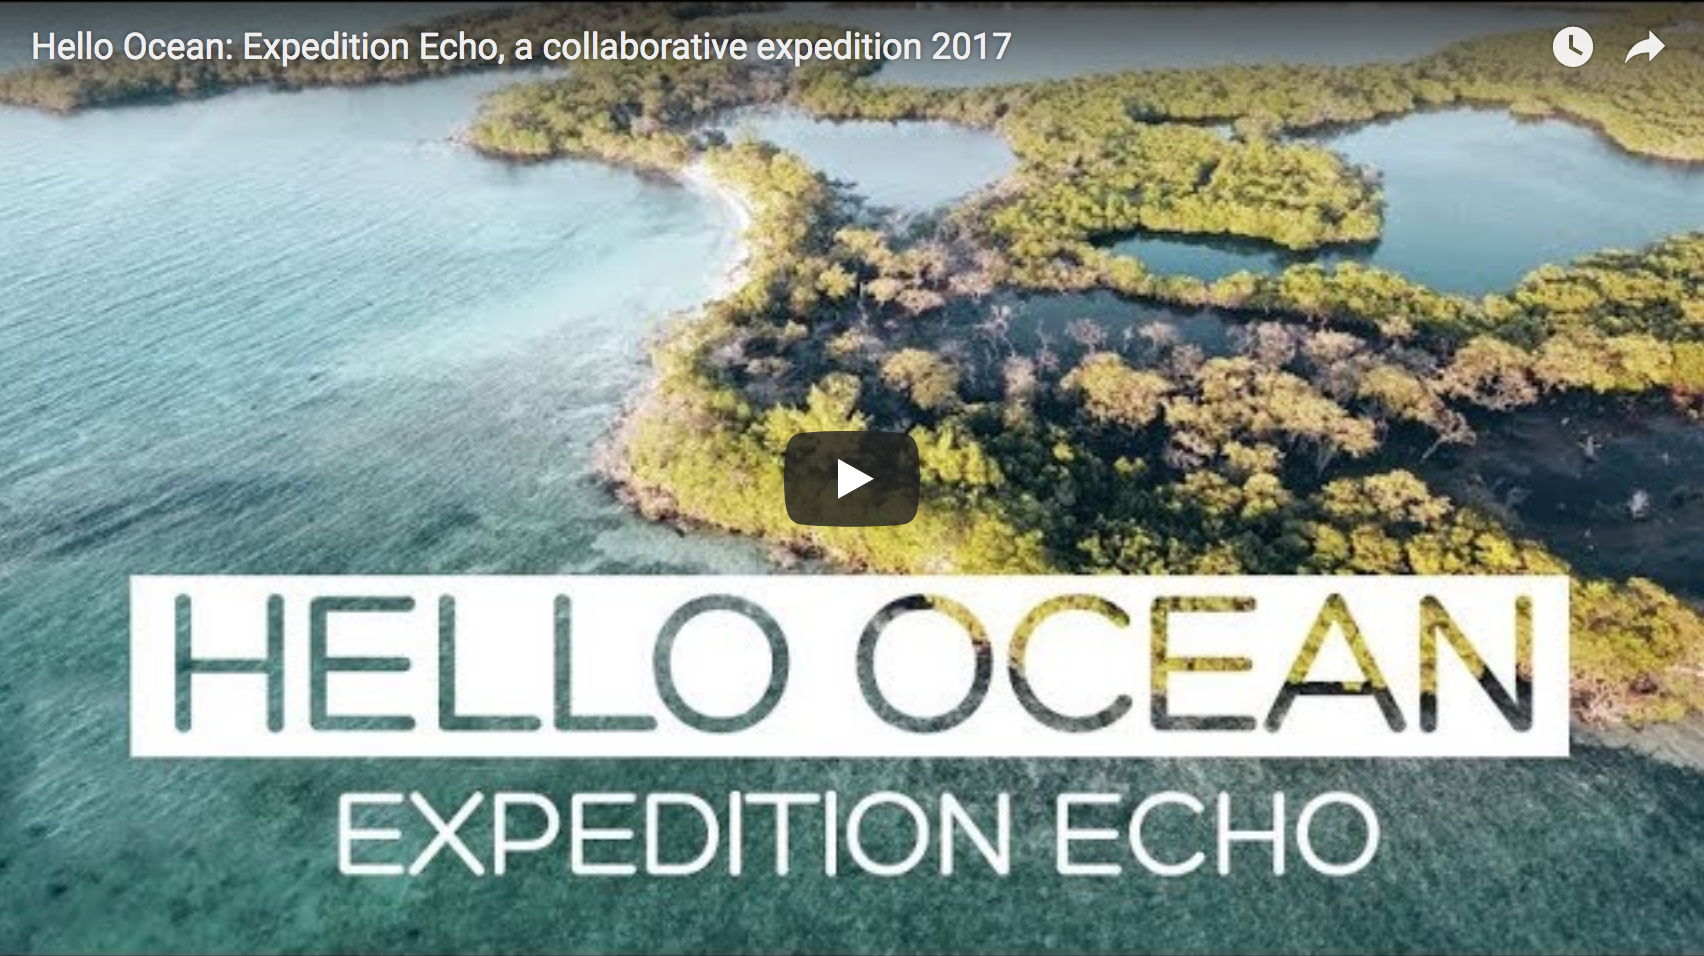 Hello Ocean: Expedition Echo